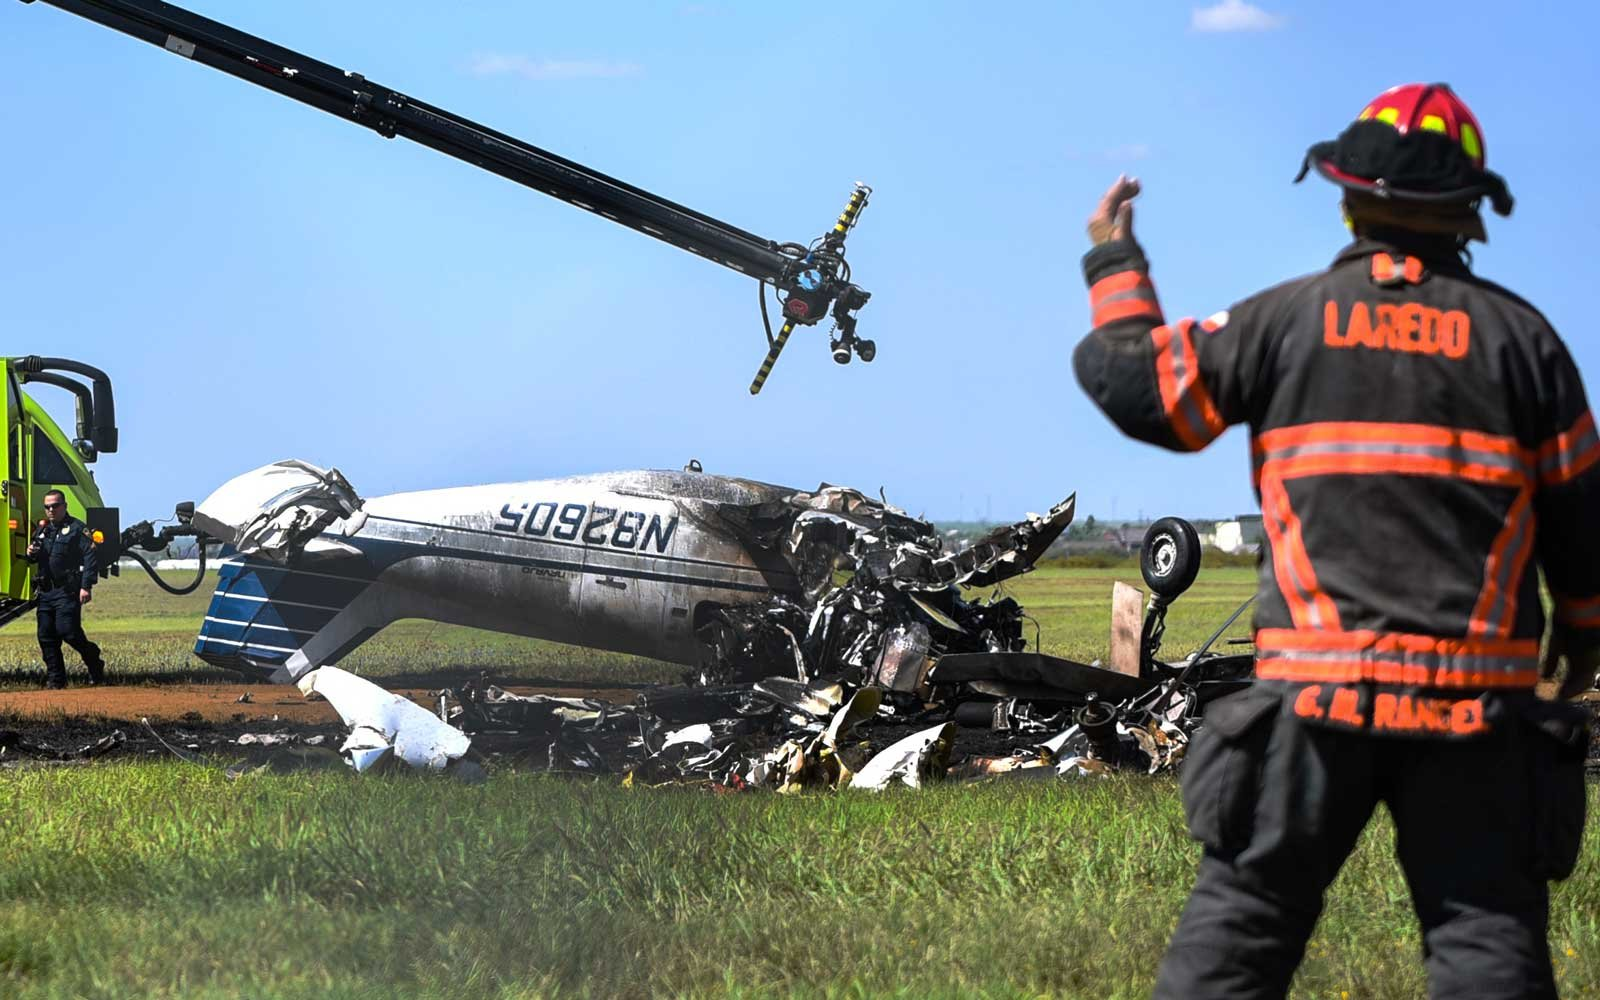 The remains of a small plane are seen after it was crashed at the Laredo International Airport in Laredo, Texas